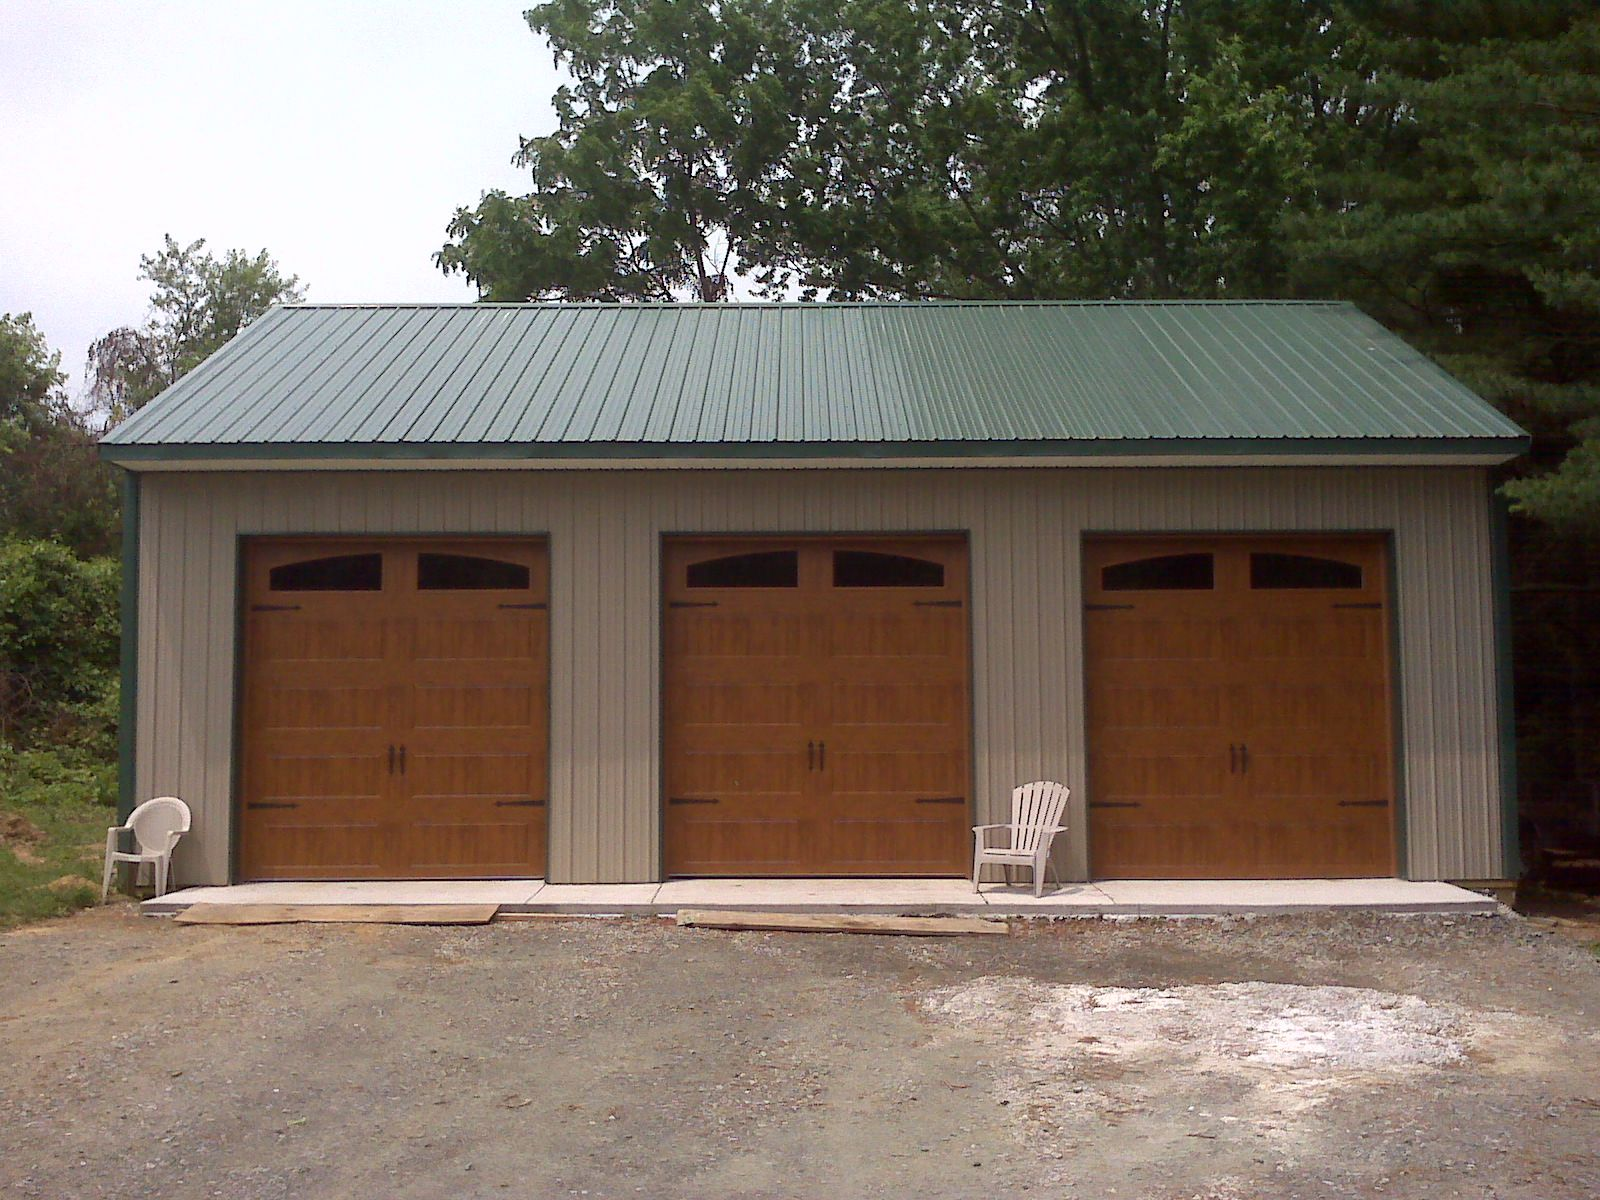 Pole Barn Design Ideas inspiration for a mid sized rustic exterior in philadelphia Pole Barns 30x40 Garage Kits Httpmetal Building Expertcom30x40 Metal Pole Barns Pinterest Car Garage Garage Prices And Home Ideas